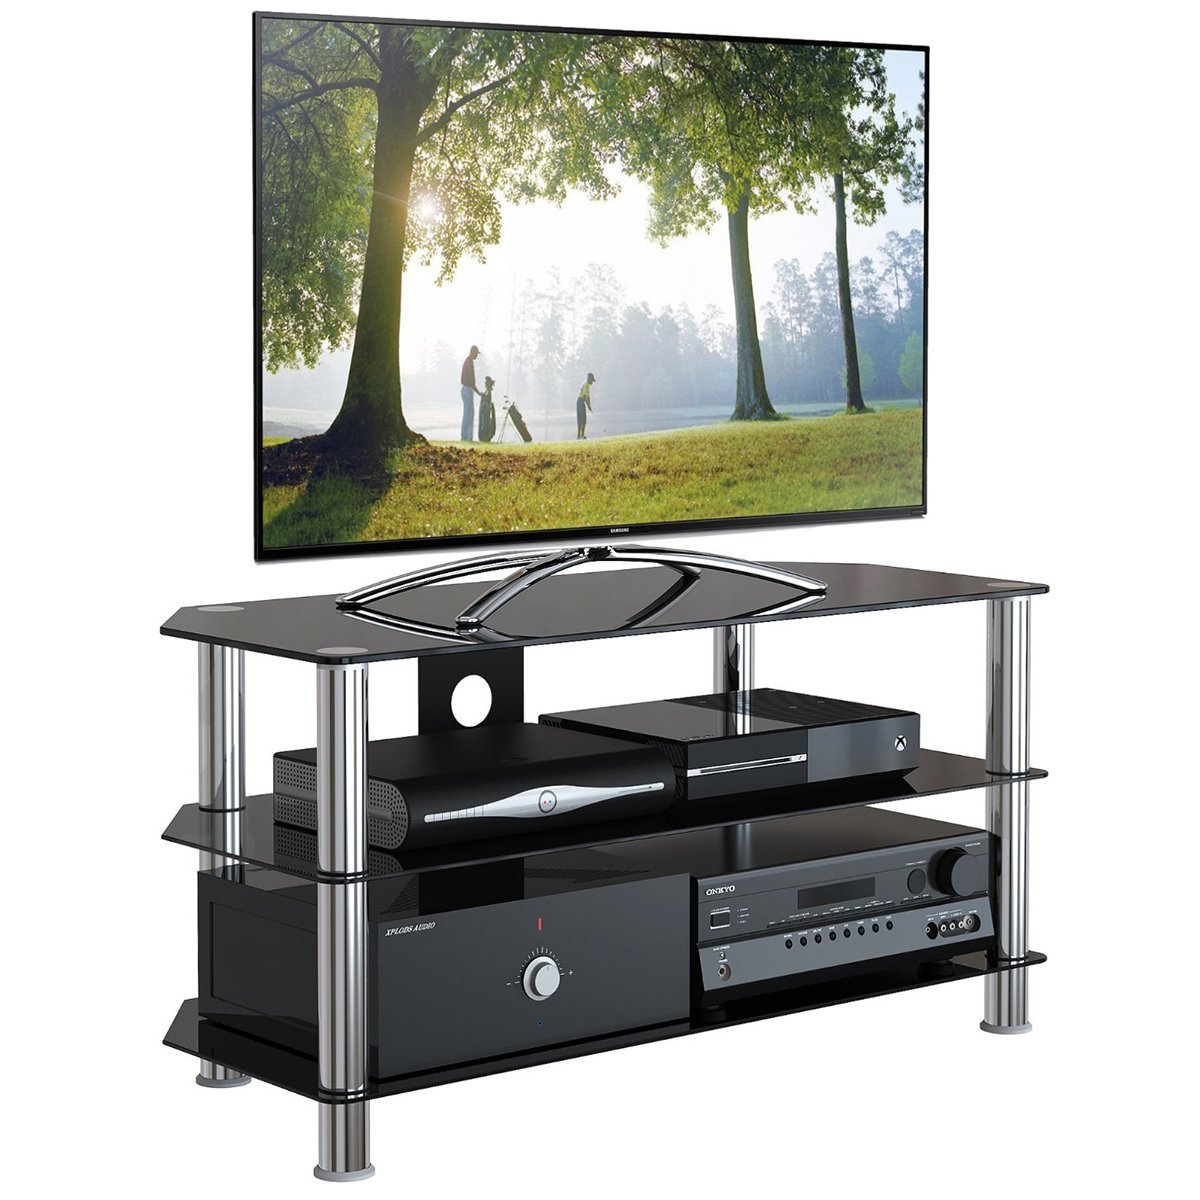 1home GT4 LCD-/Plasma-TV Rack Glas Tisch Ständer: Amazon.de: Elektronik